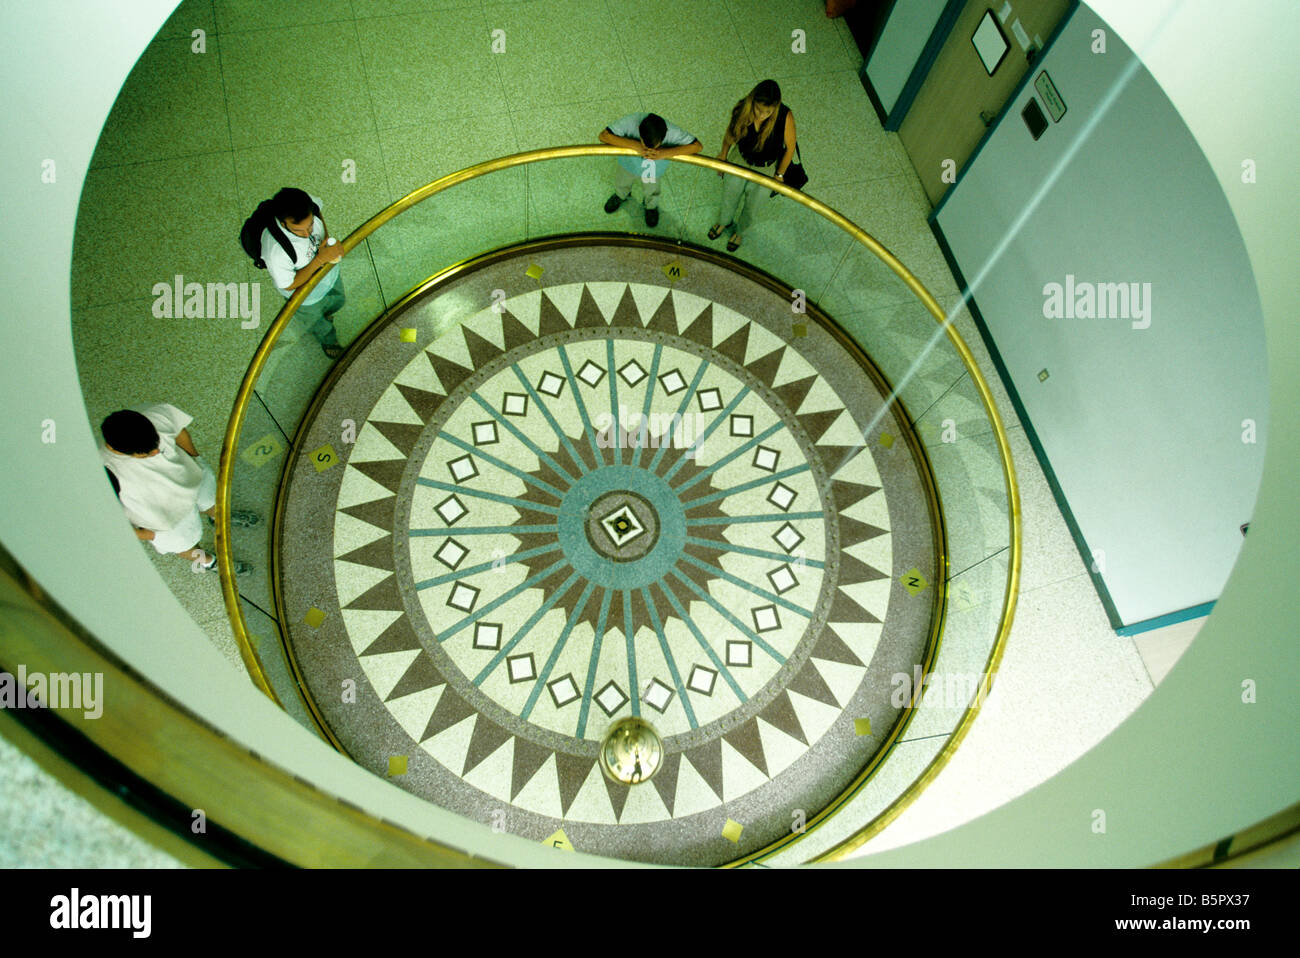 Foucault pendulum, students & visitors. - Stock Image